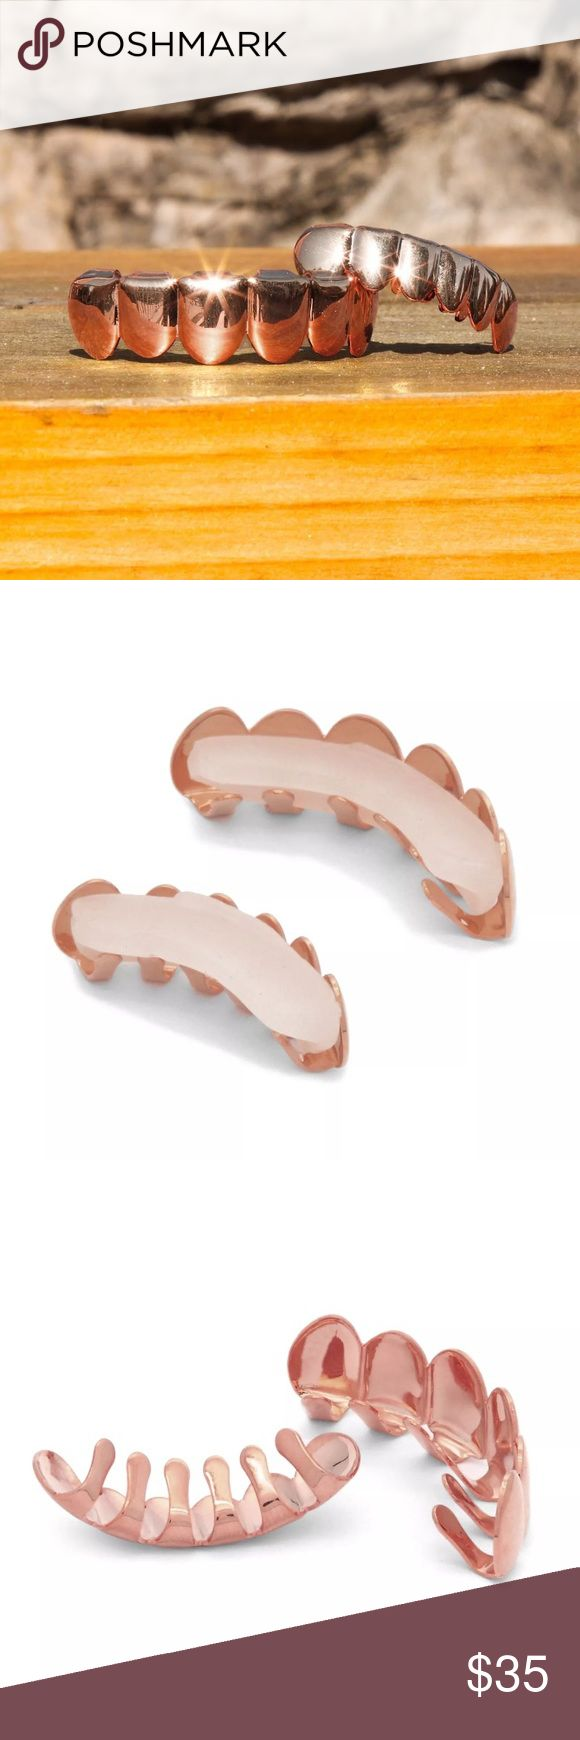 Rose Gold Grill Set Top Bottom Teeth Removable New BRAND NEW!! NEVER BEEN WORN OR USED  Top & Bottom Grillz SET  Grillz are designed for Bottom & Top teeth and is one size fits all.  Includes silicon fixing bar to keep your grill in tight.  COMES WITH EASY TO FOLLOW INSTRUCTIONS AND READY TO WEAR IN MINUTES.  Each grillz can fit any teeth no matter how straight or crooked your teeth are.  you can wear the grillz or remove it easily. These are ROSE Gold colored. UNISEX, can be worn by men or…